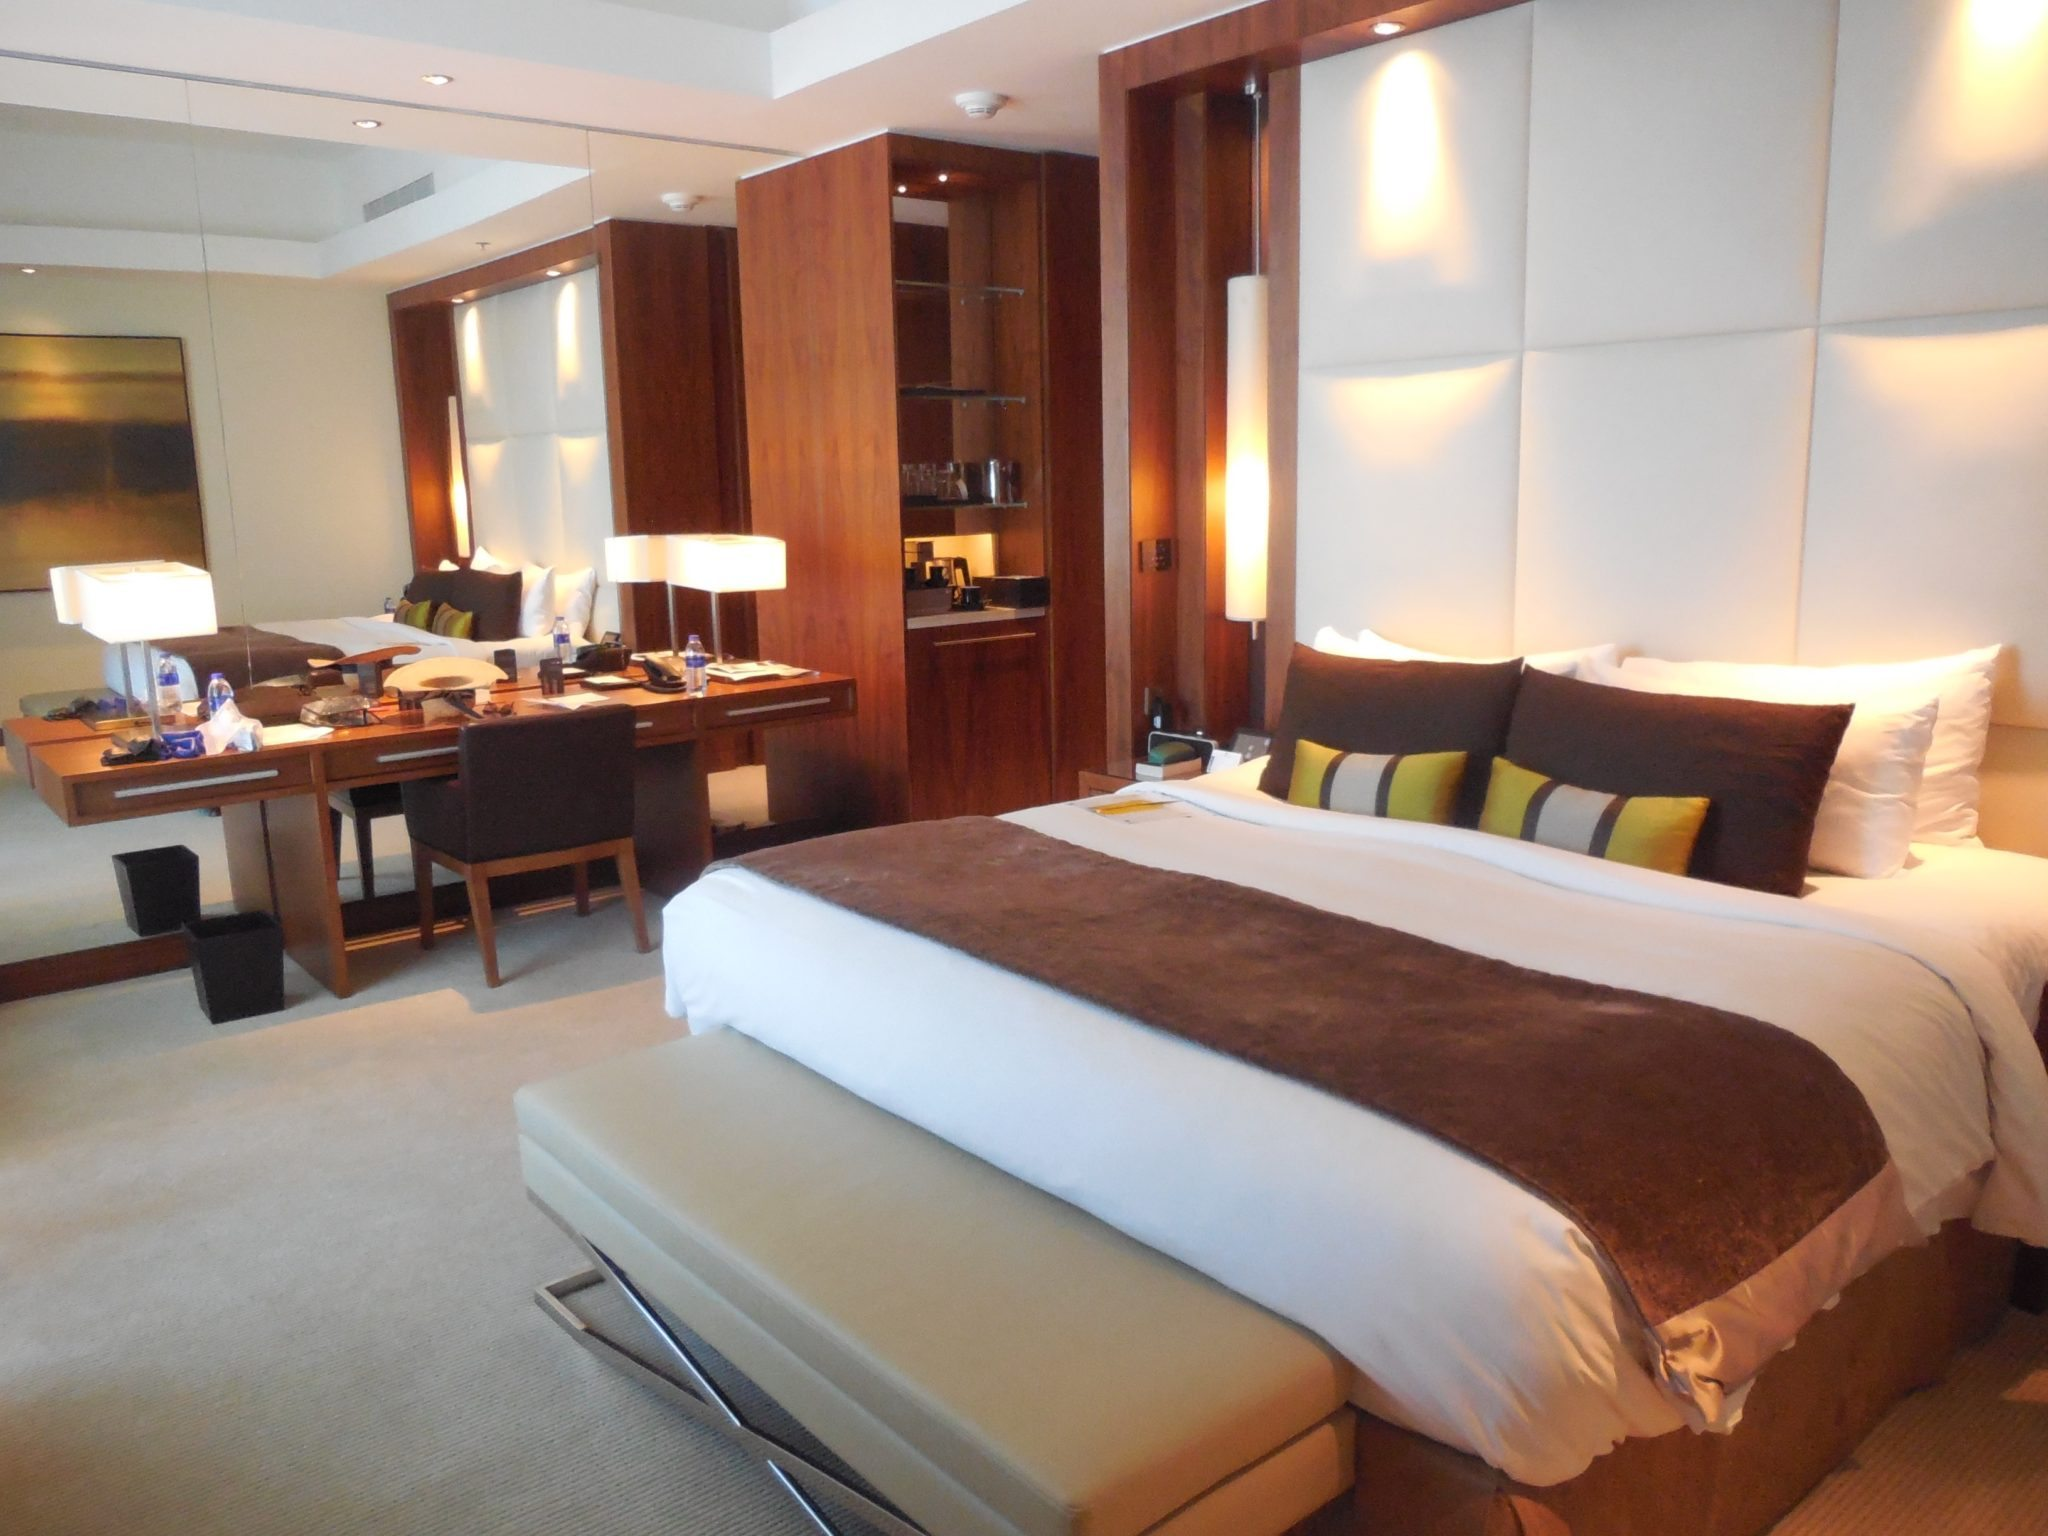 Review Of Luxurious 5 Star JW Marriott Marquis Hotel Dubai Travels With Sh